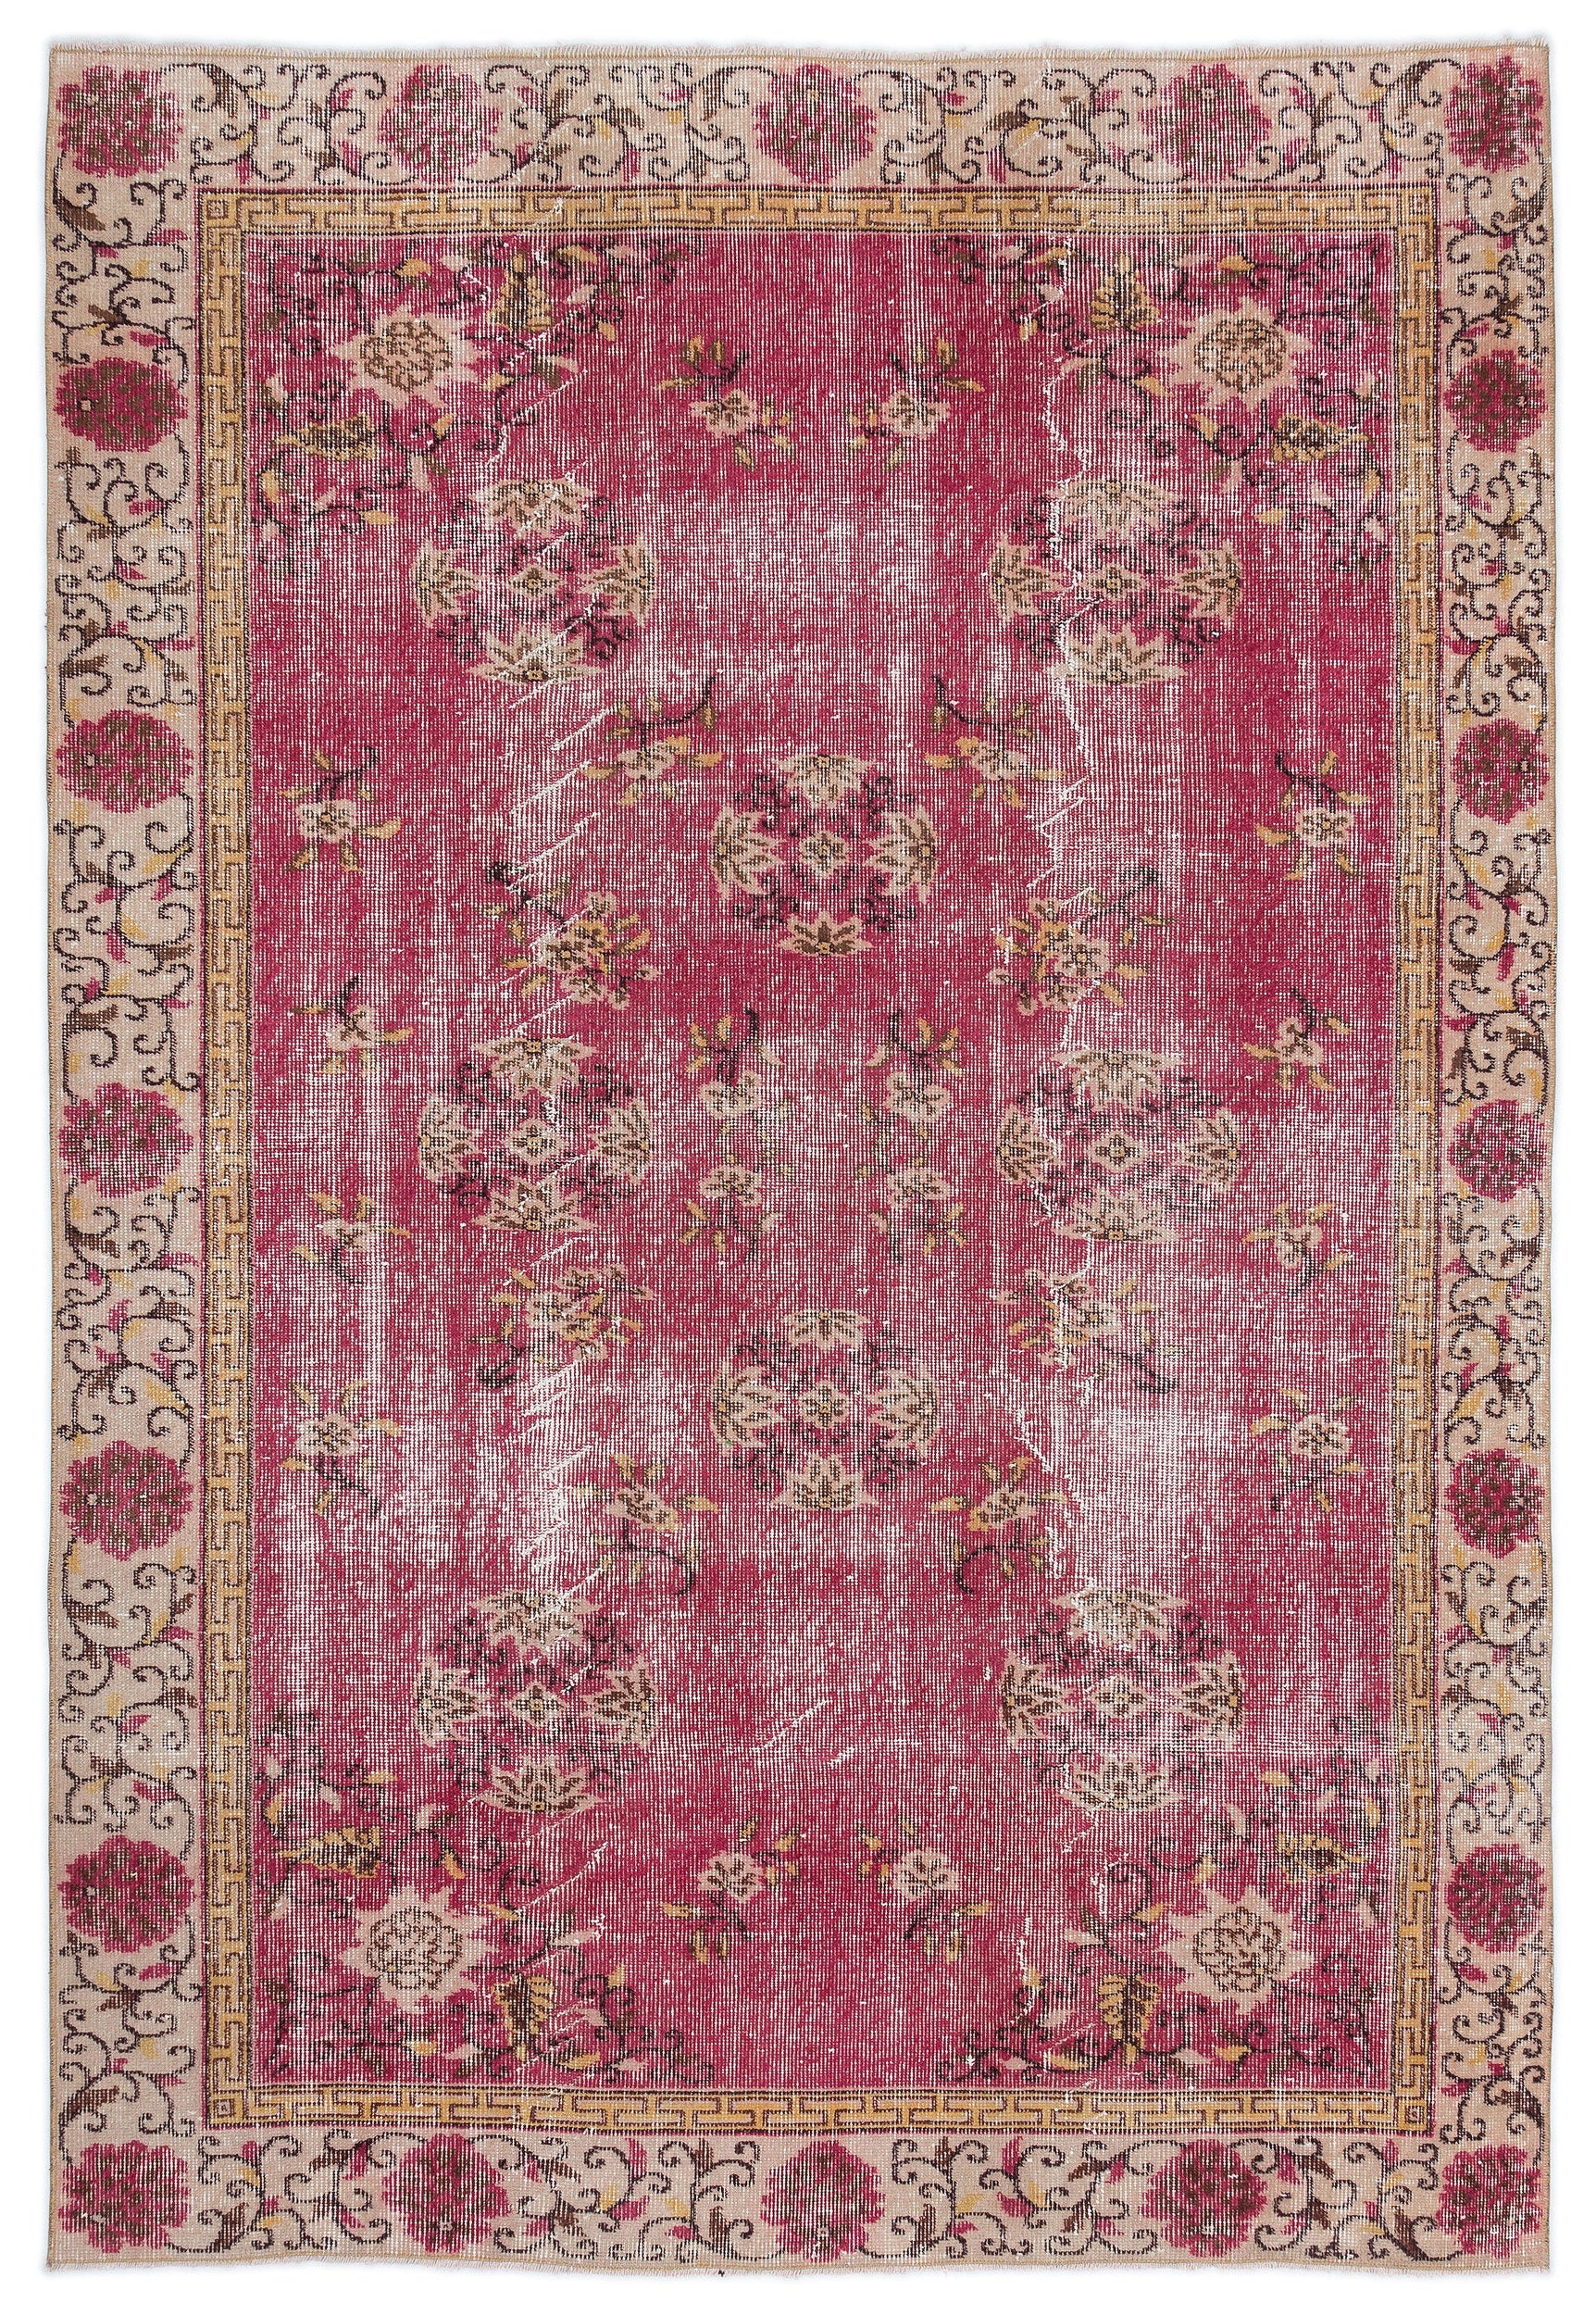 Retro Over Dyed Vintage Rug 5'9'' x 8'5'' ft 174 x 256 cm